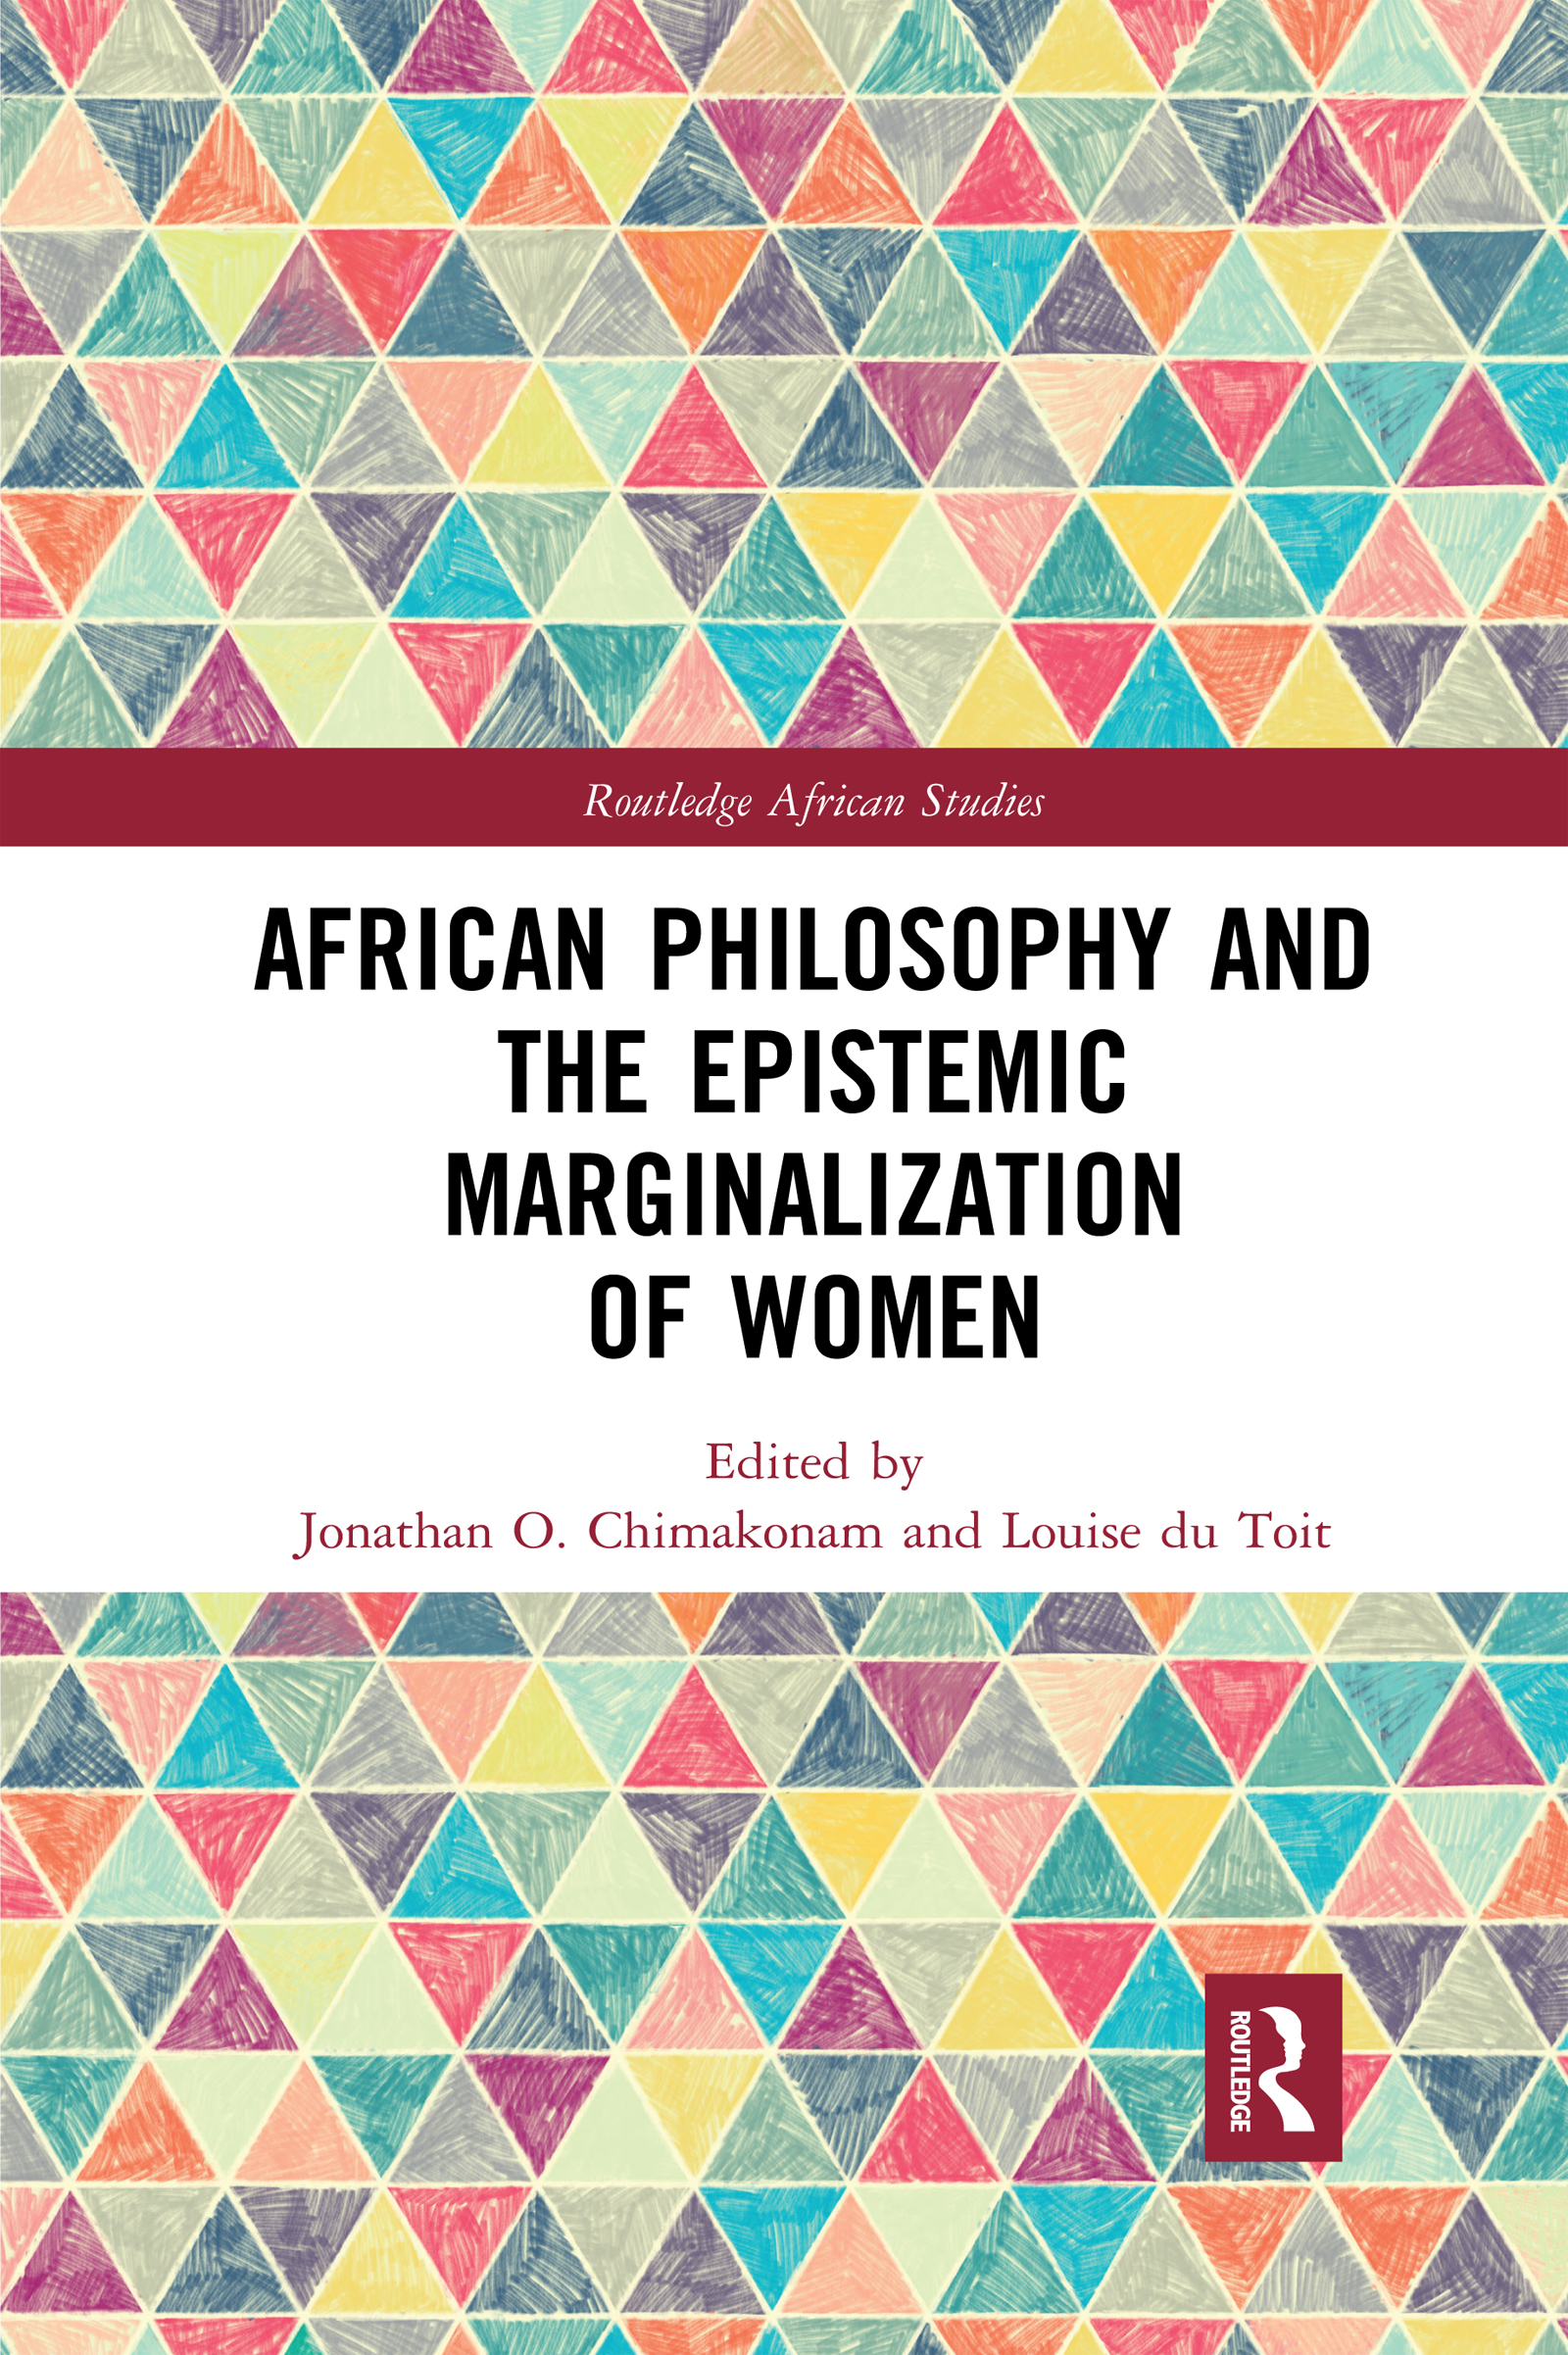 African Philosophy and the Epistemic Marginalization of Women